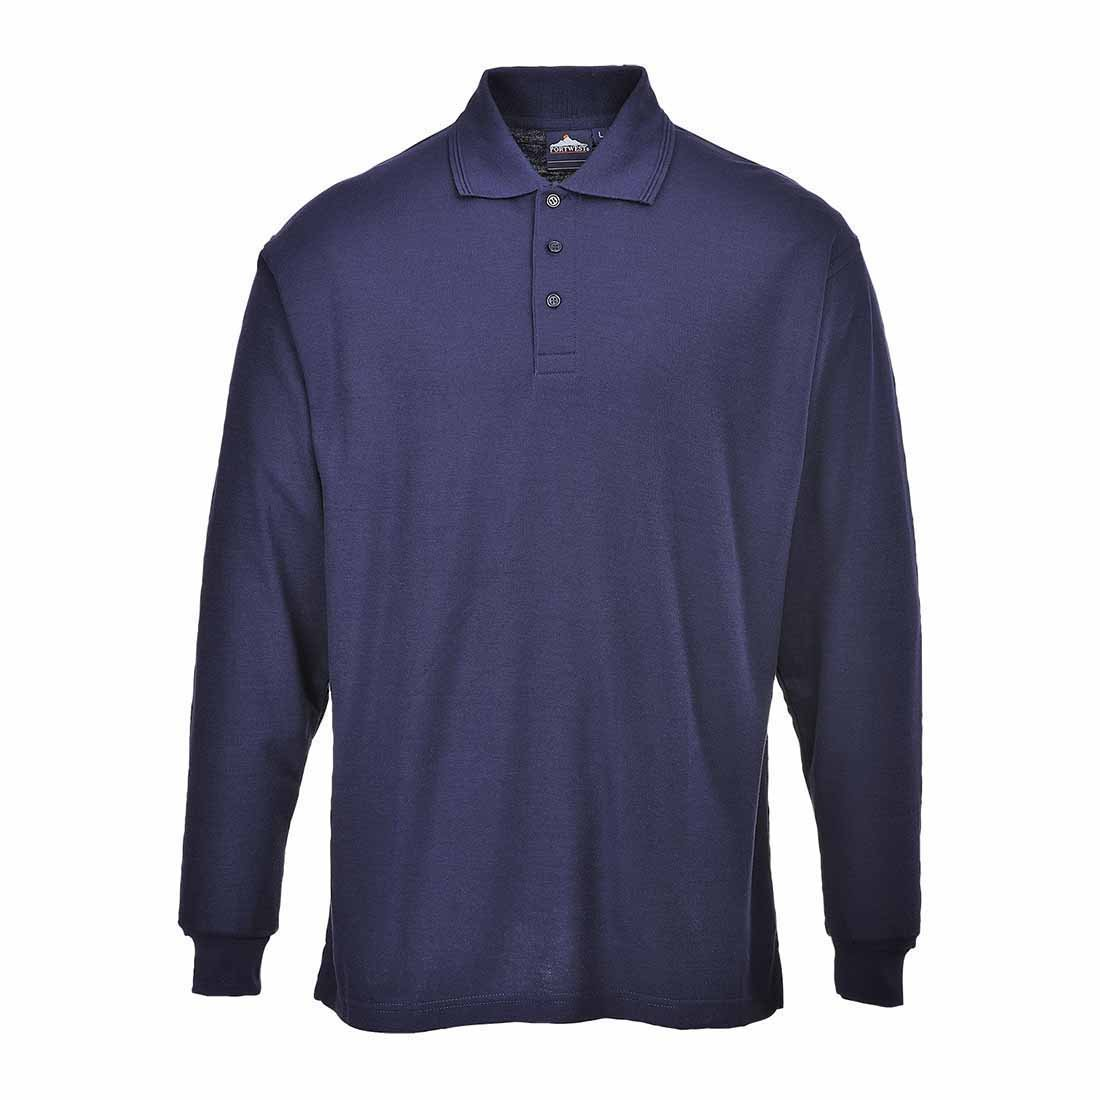 Portwest B212NAR XL Long Sleeve Polo Shirt - Navy AutoMotion Factors Limited B212NARXL